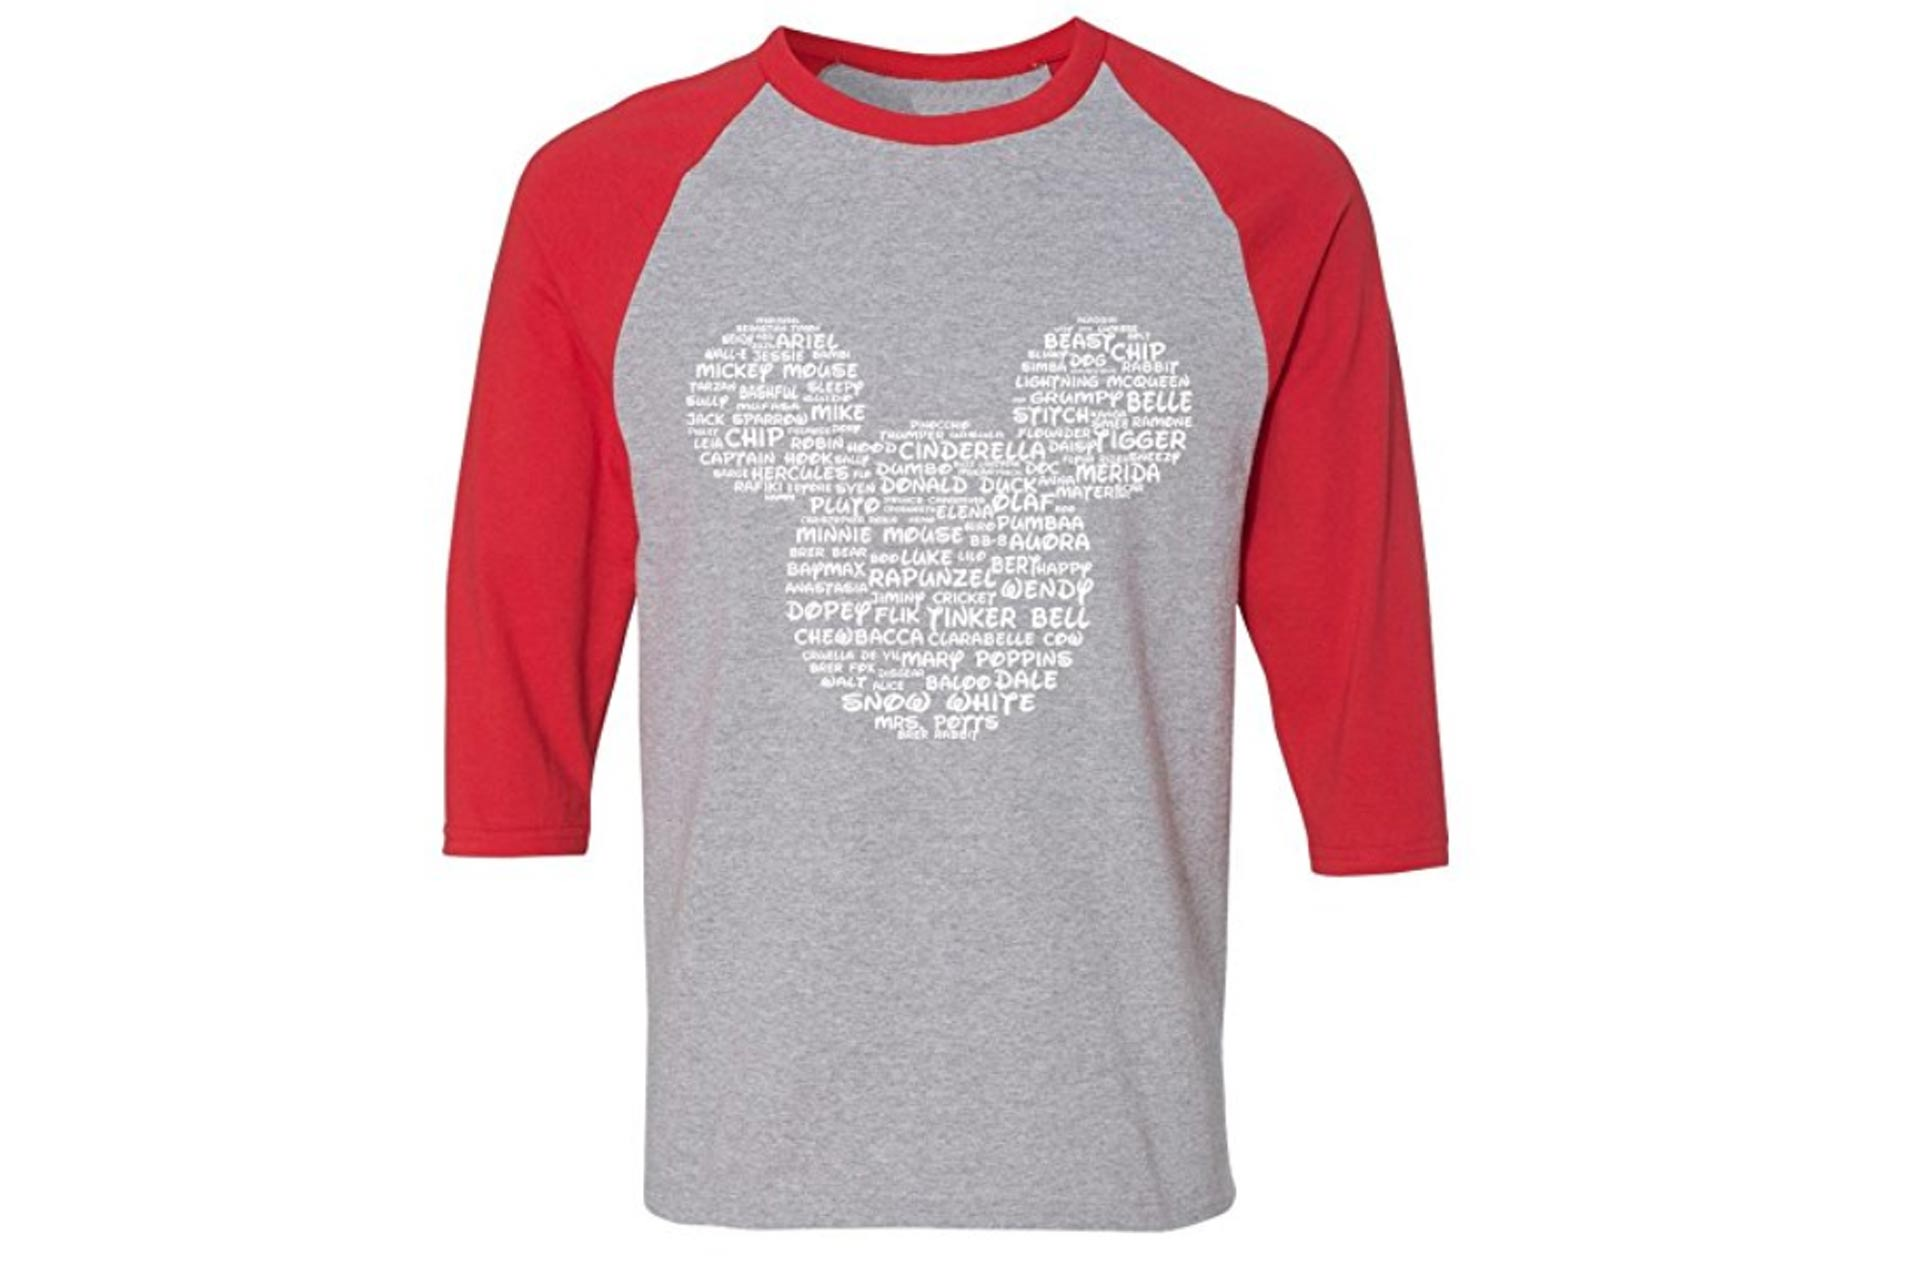 DisGear's Name That Disney Character Tee